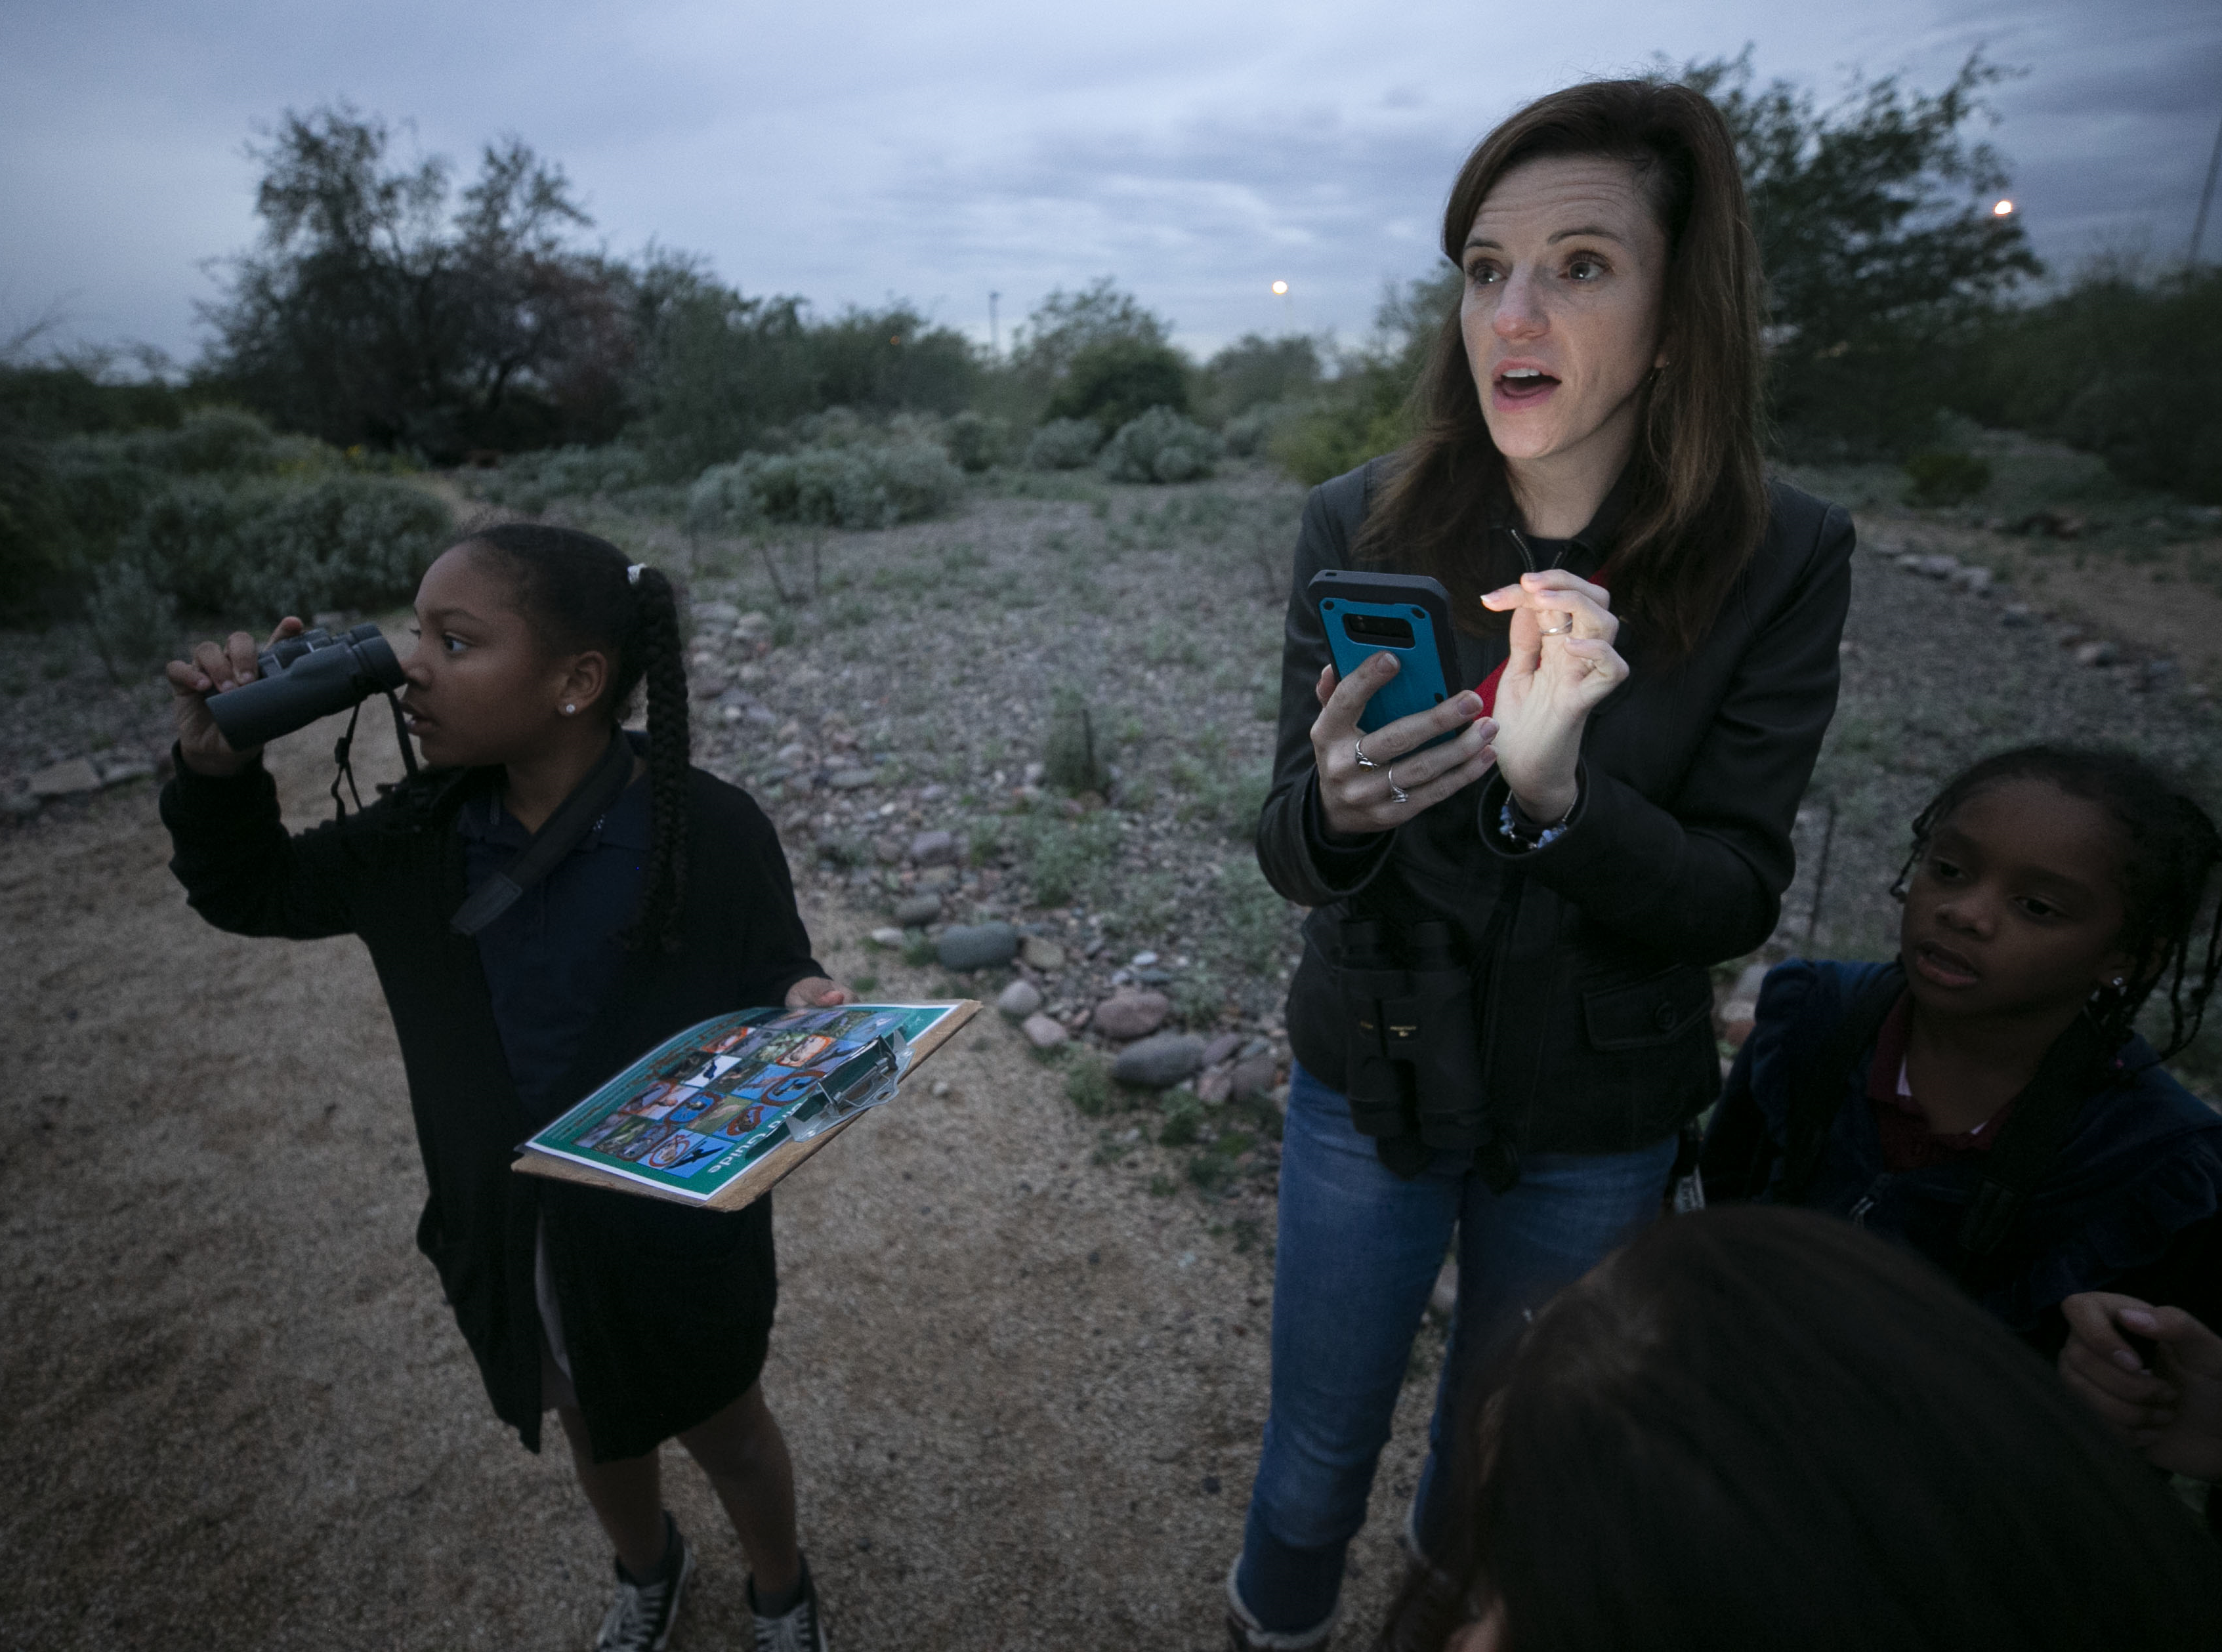 Emily Martell, a teacher/naturalist with the Nina Mason Pulliam Rio Salado Audubon Center, plays audio of a bird call from her phone while bird-watching with kids from the Tri-City West Thornwood Branch of Avondale of the Boys & Girls Clubs of Metro Phoenix, on Dec. 6, 2018.